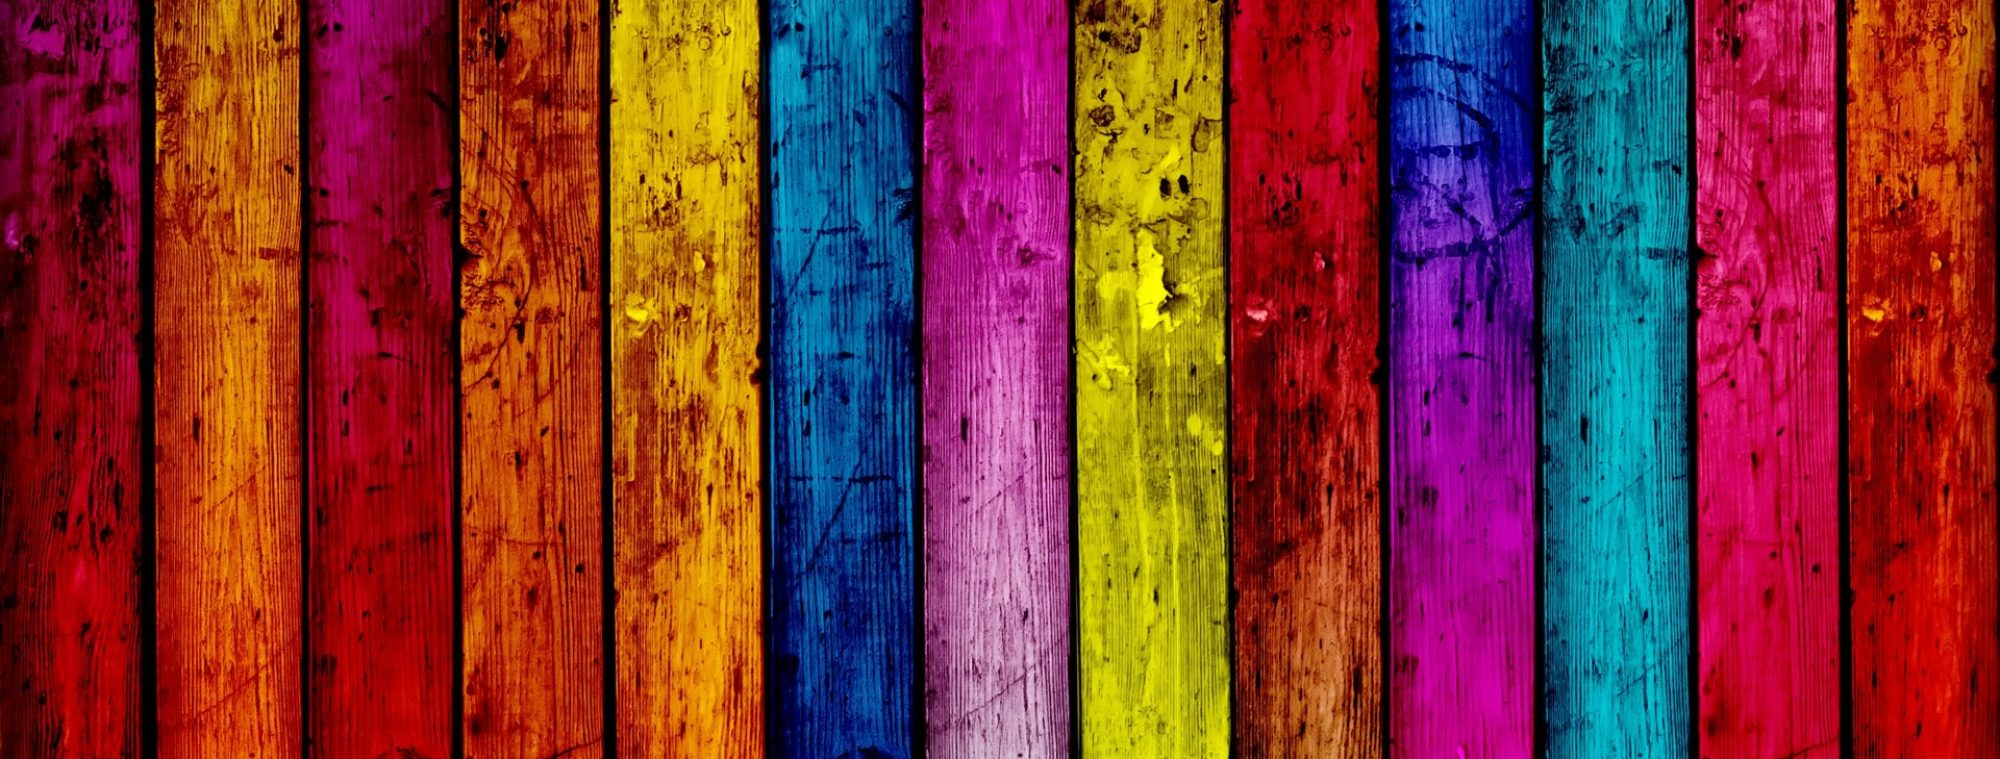 cropped-Colorful-wooden-abstract_1920x1080.jpg